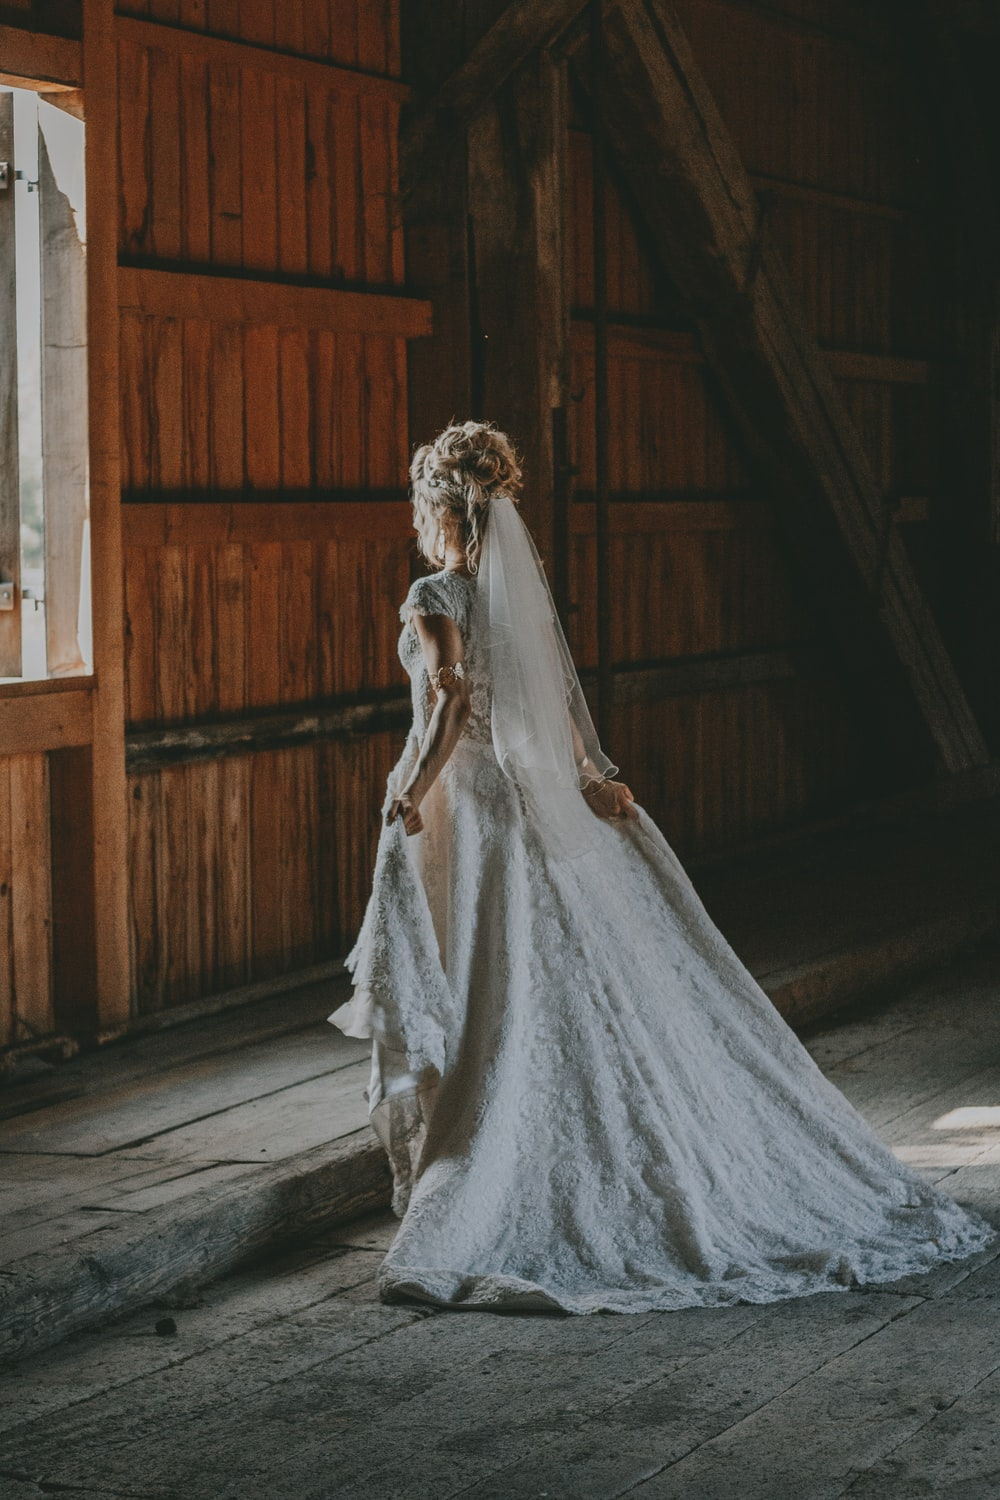 photo of woman in white wedding dress